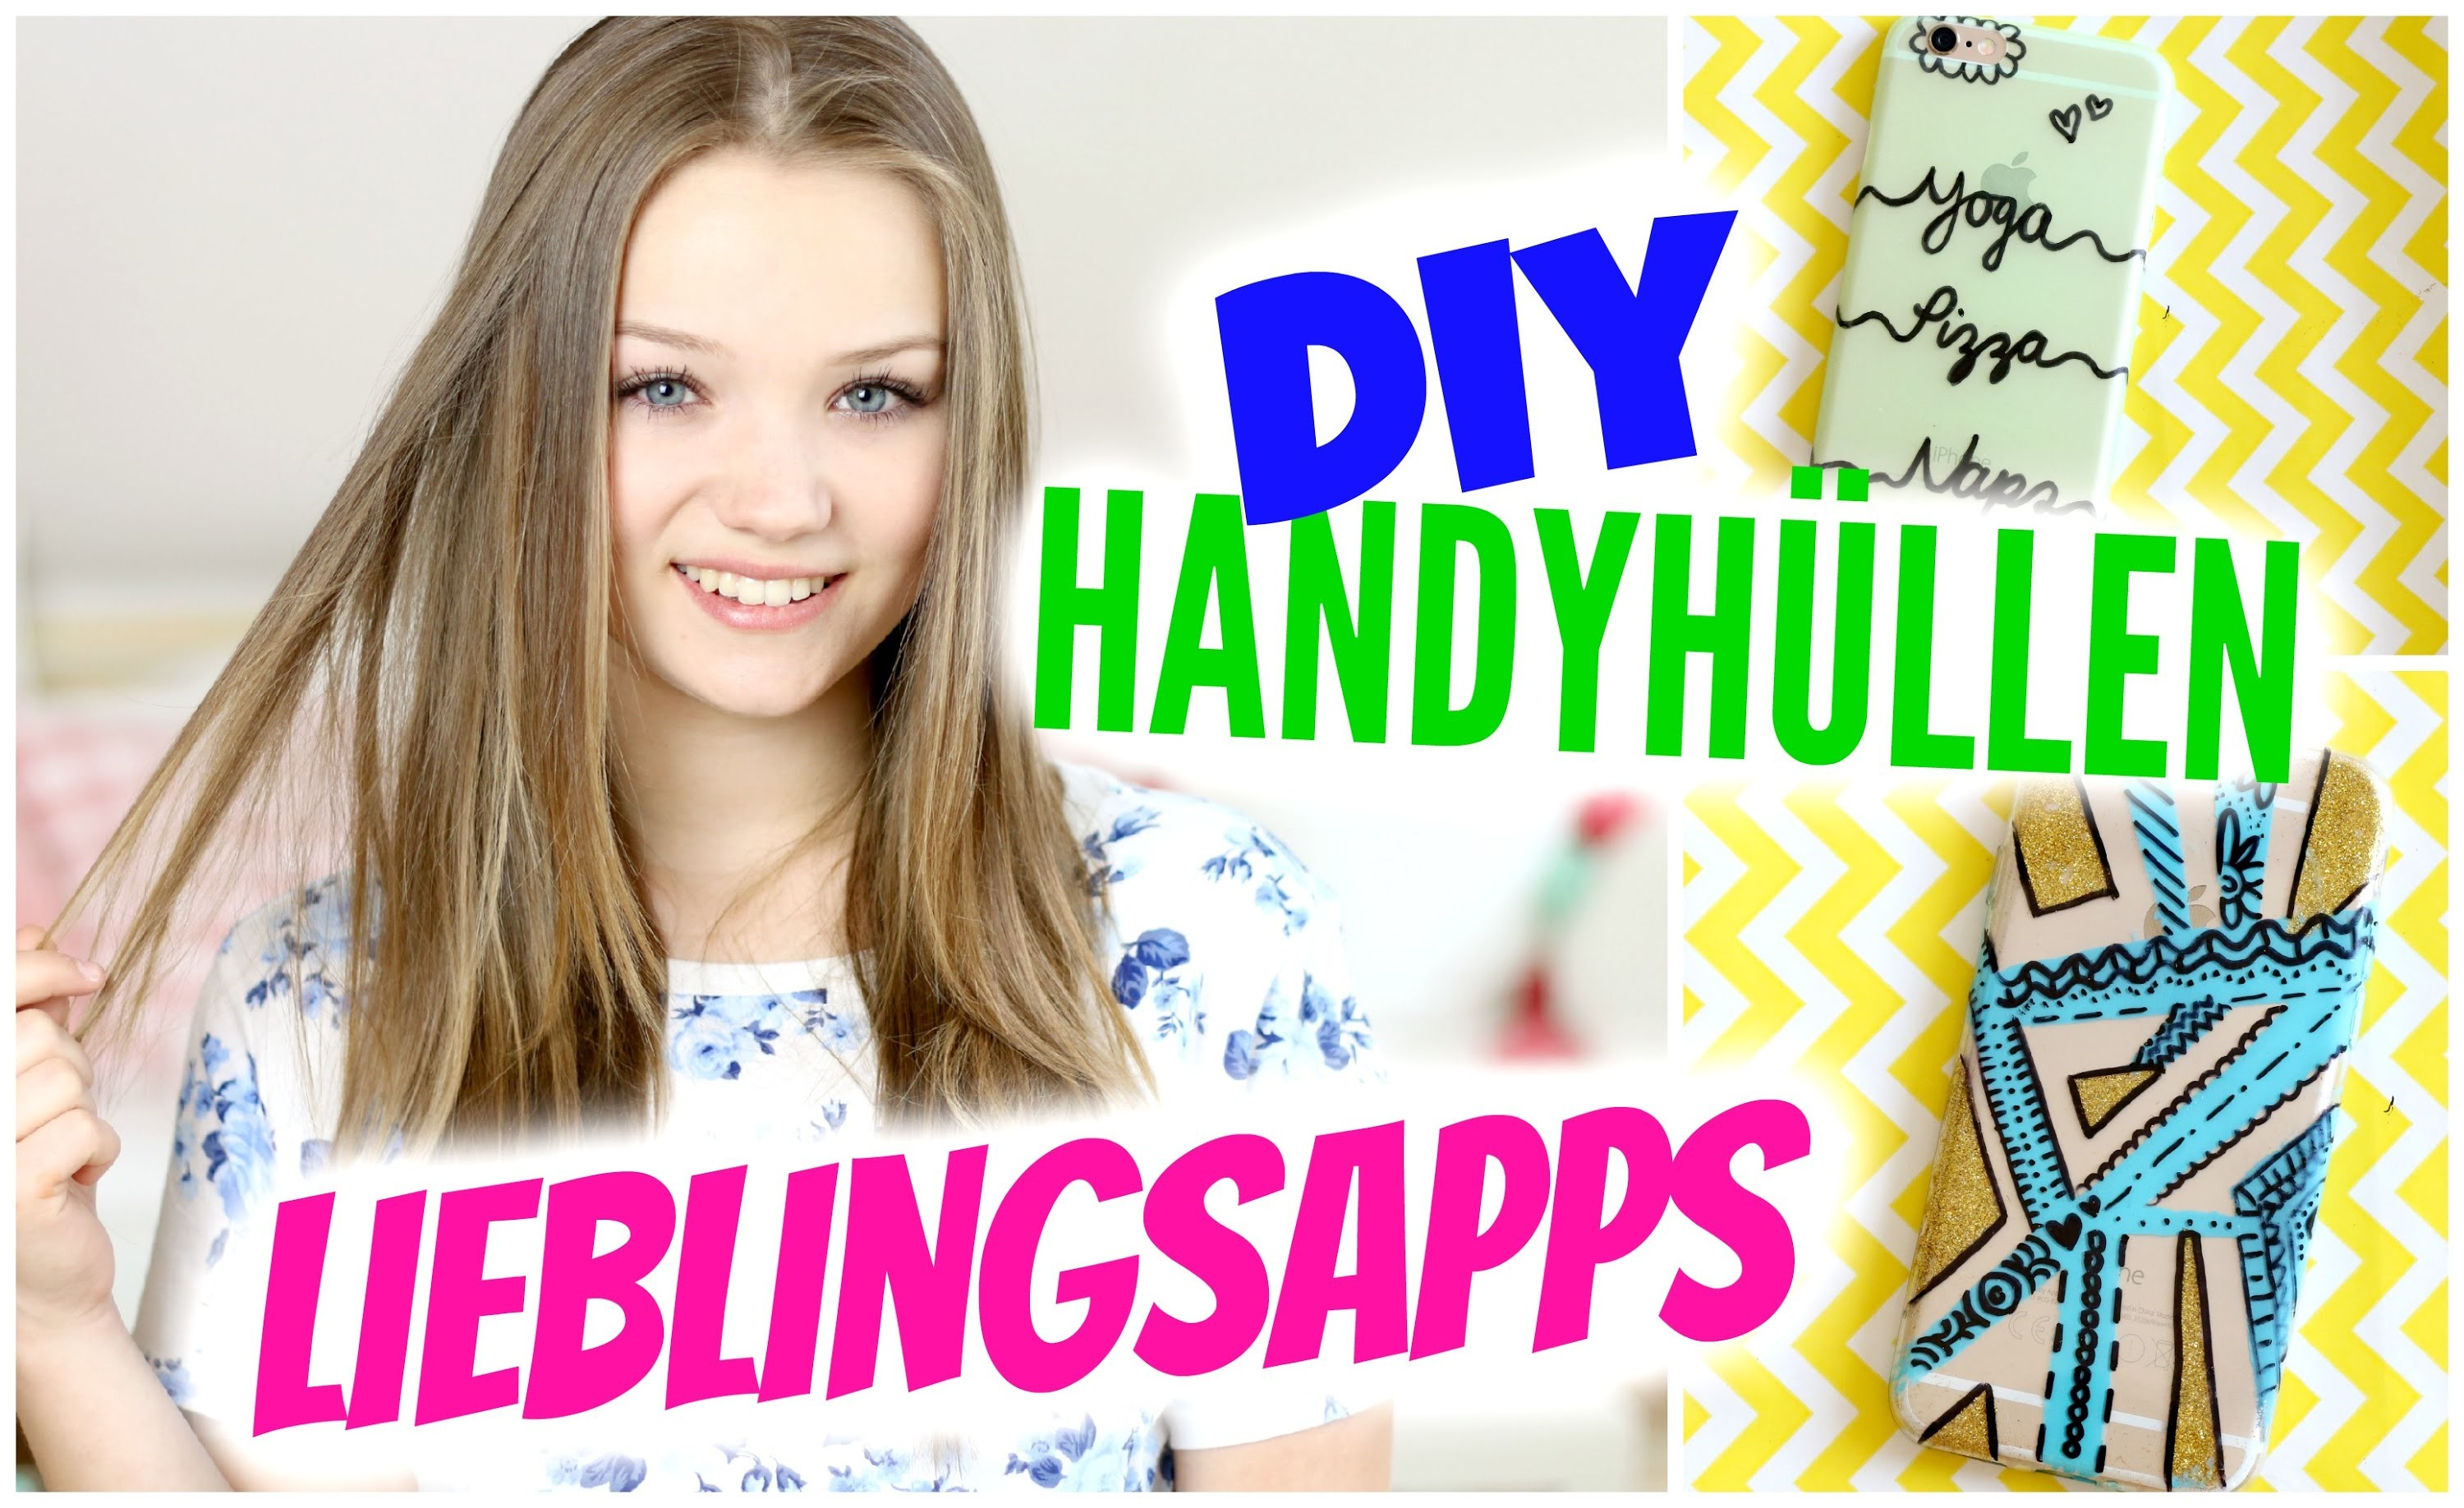 WHATS ON MY PHONE & DIY HANDYHÜLLEN | Julia Beautx